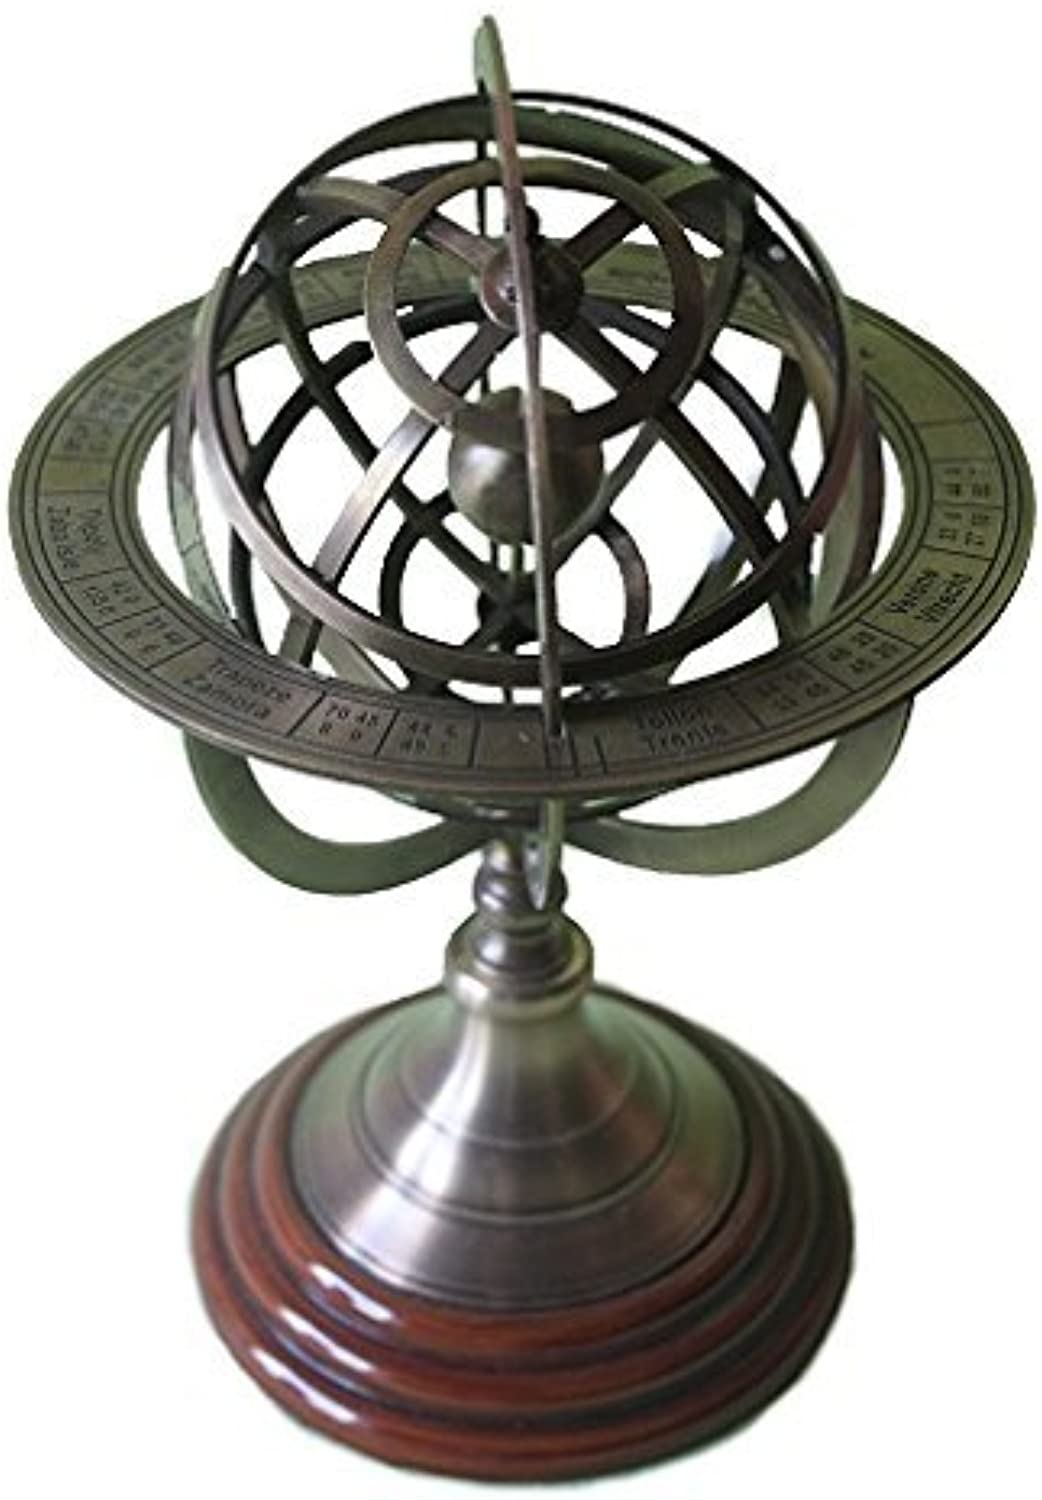 Collectibles Buy Brass Armillary Sphere Globe Clock Spherical Astrolabe Vintage compass